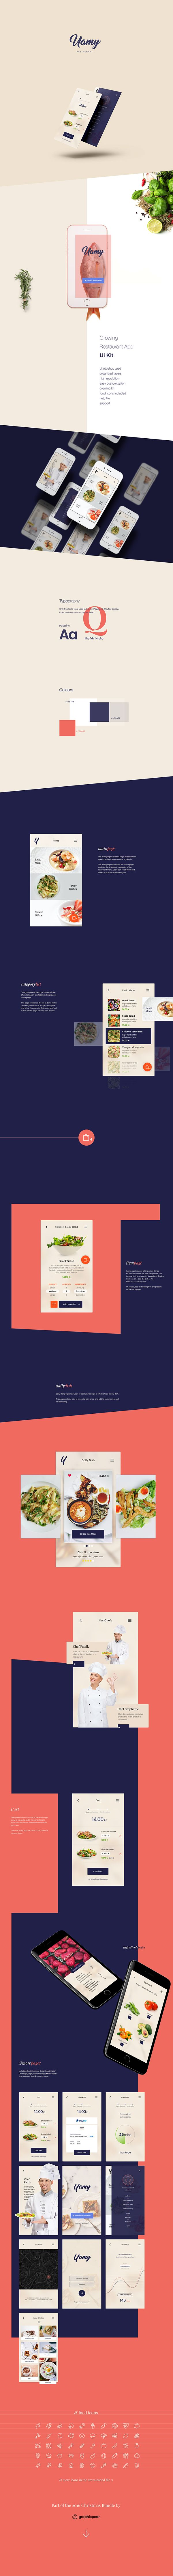 Professional restaurant ui kit in photoshop .psd format which you can download and customize for your app design and website design projects.